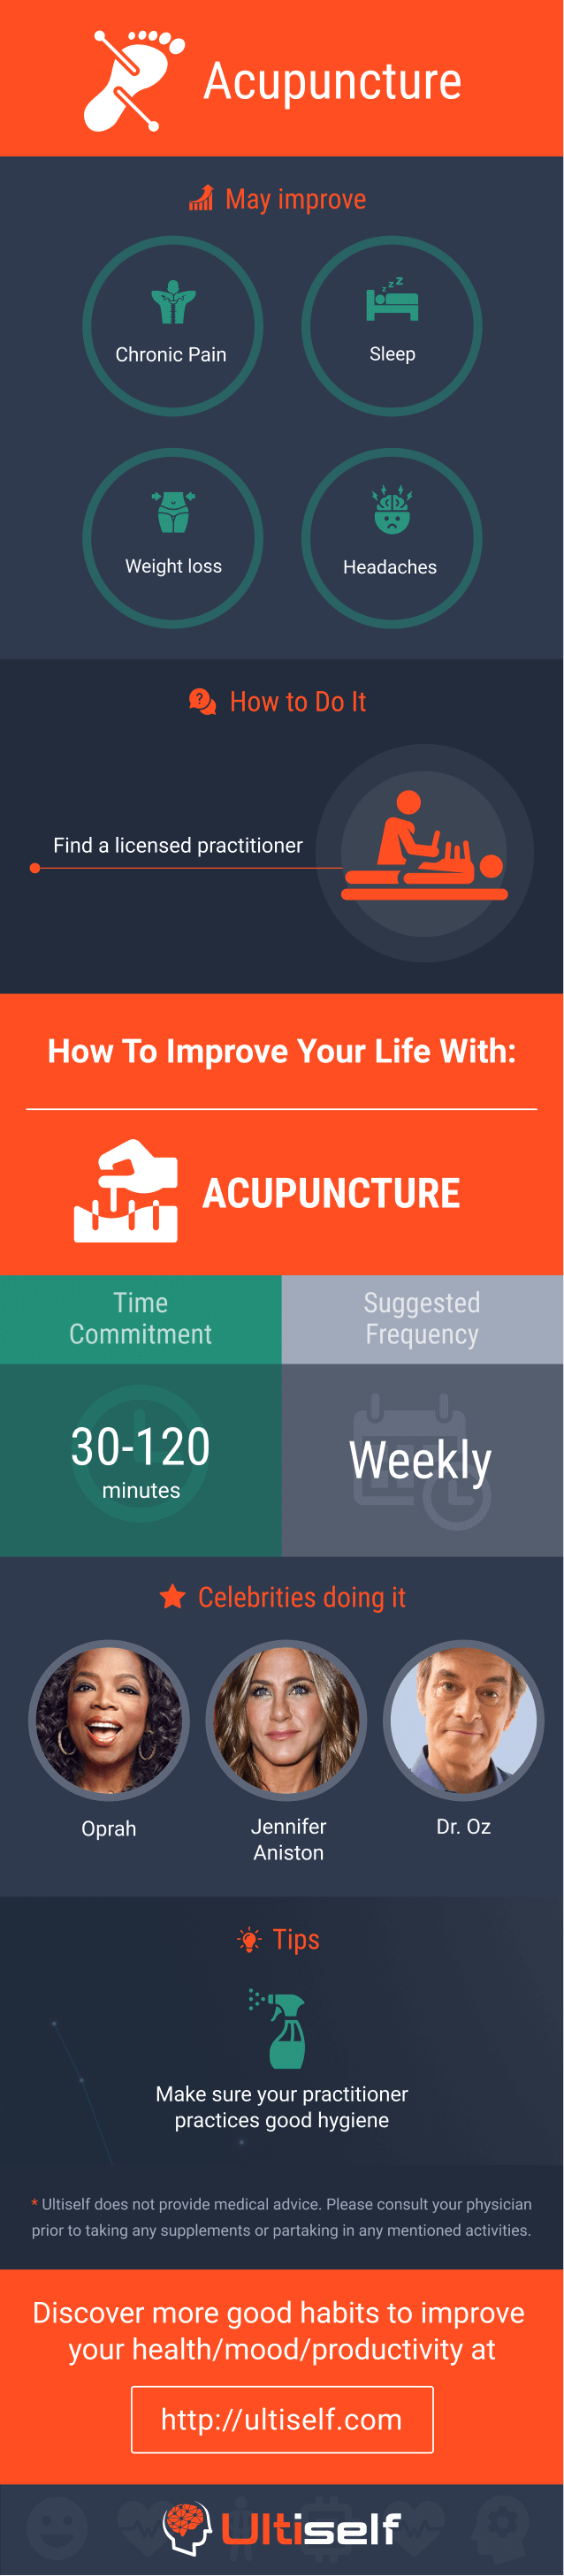 Acupuncture infographic